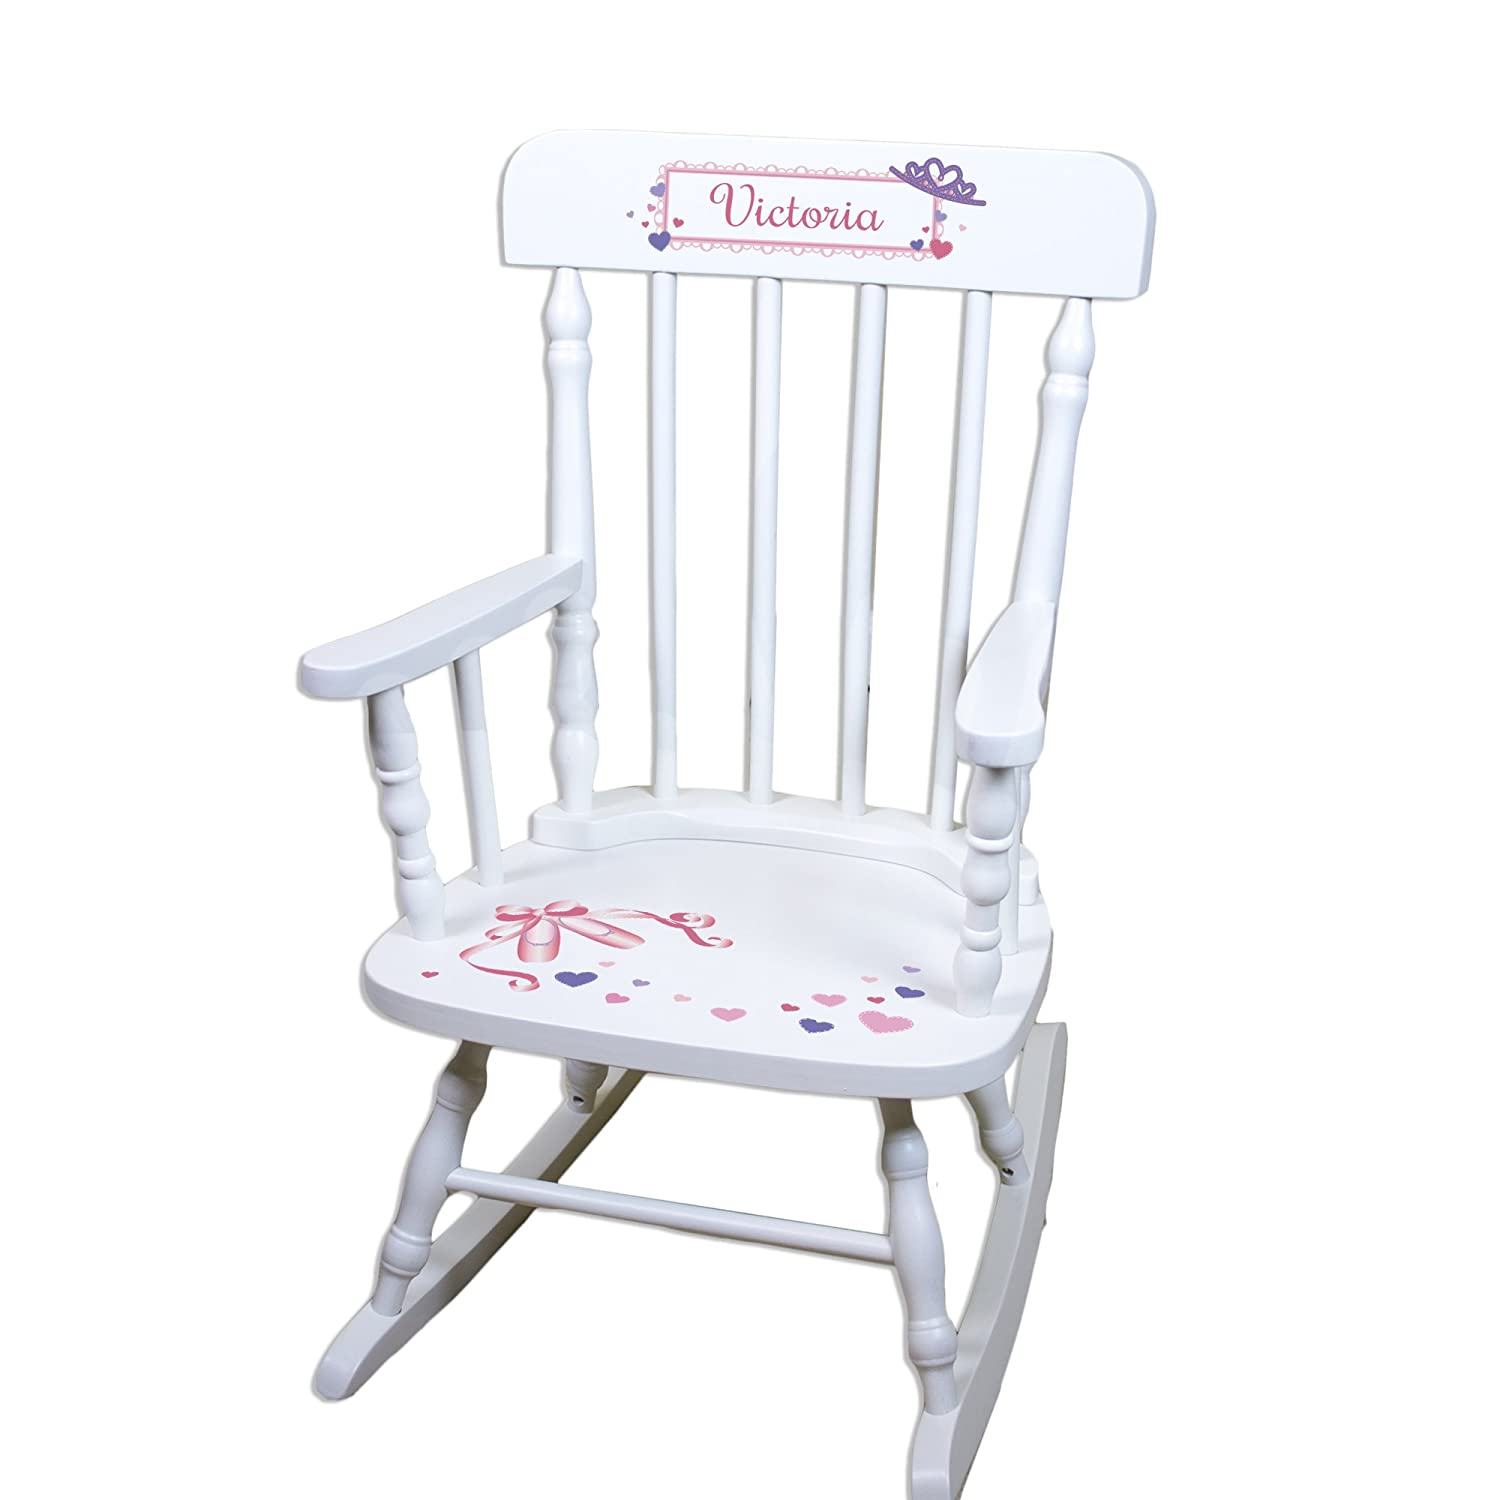 high-quality Childrenu0027s Personalized White Ballet Princess Rocking Chair  sc 1 st  Vancouver Gardening and Landscaping Services & high-quality Childrenu0027s Personalized White Ballet Princess Rocking ...